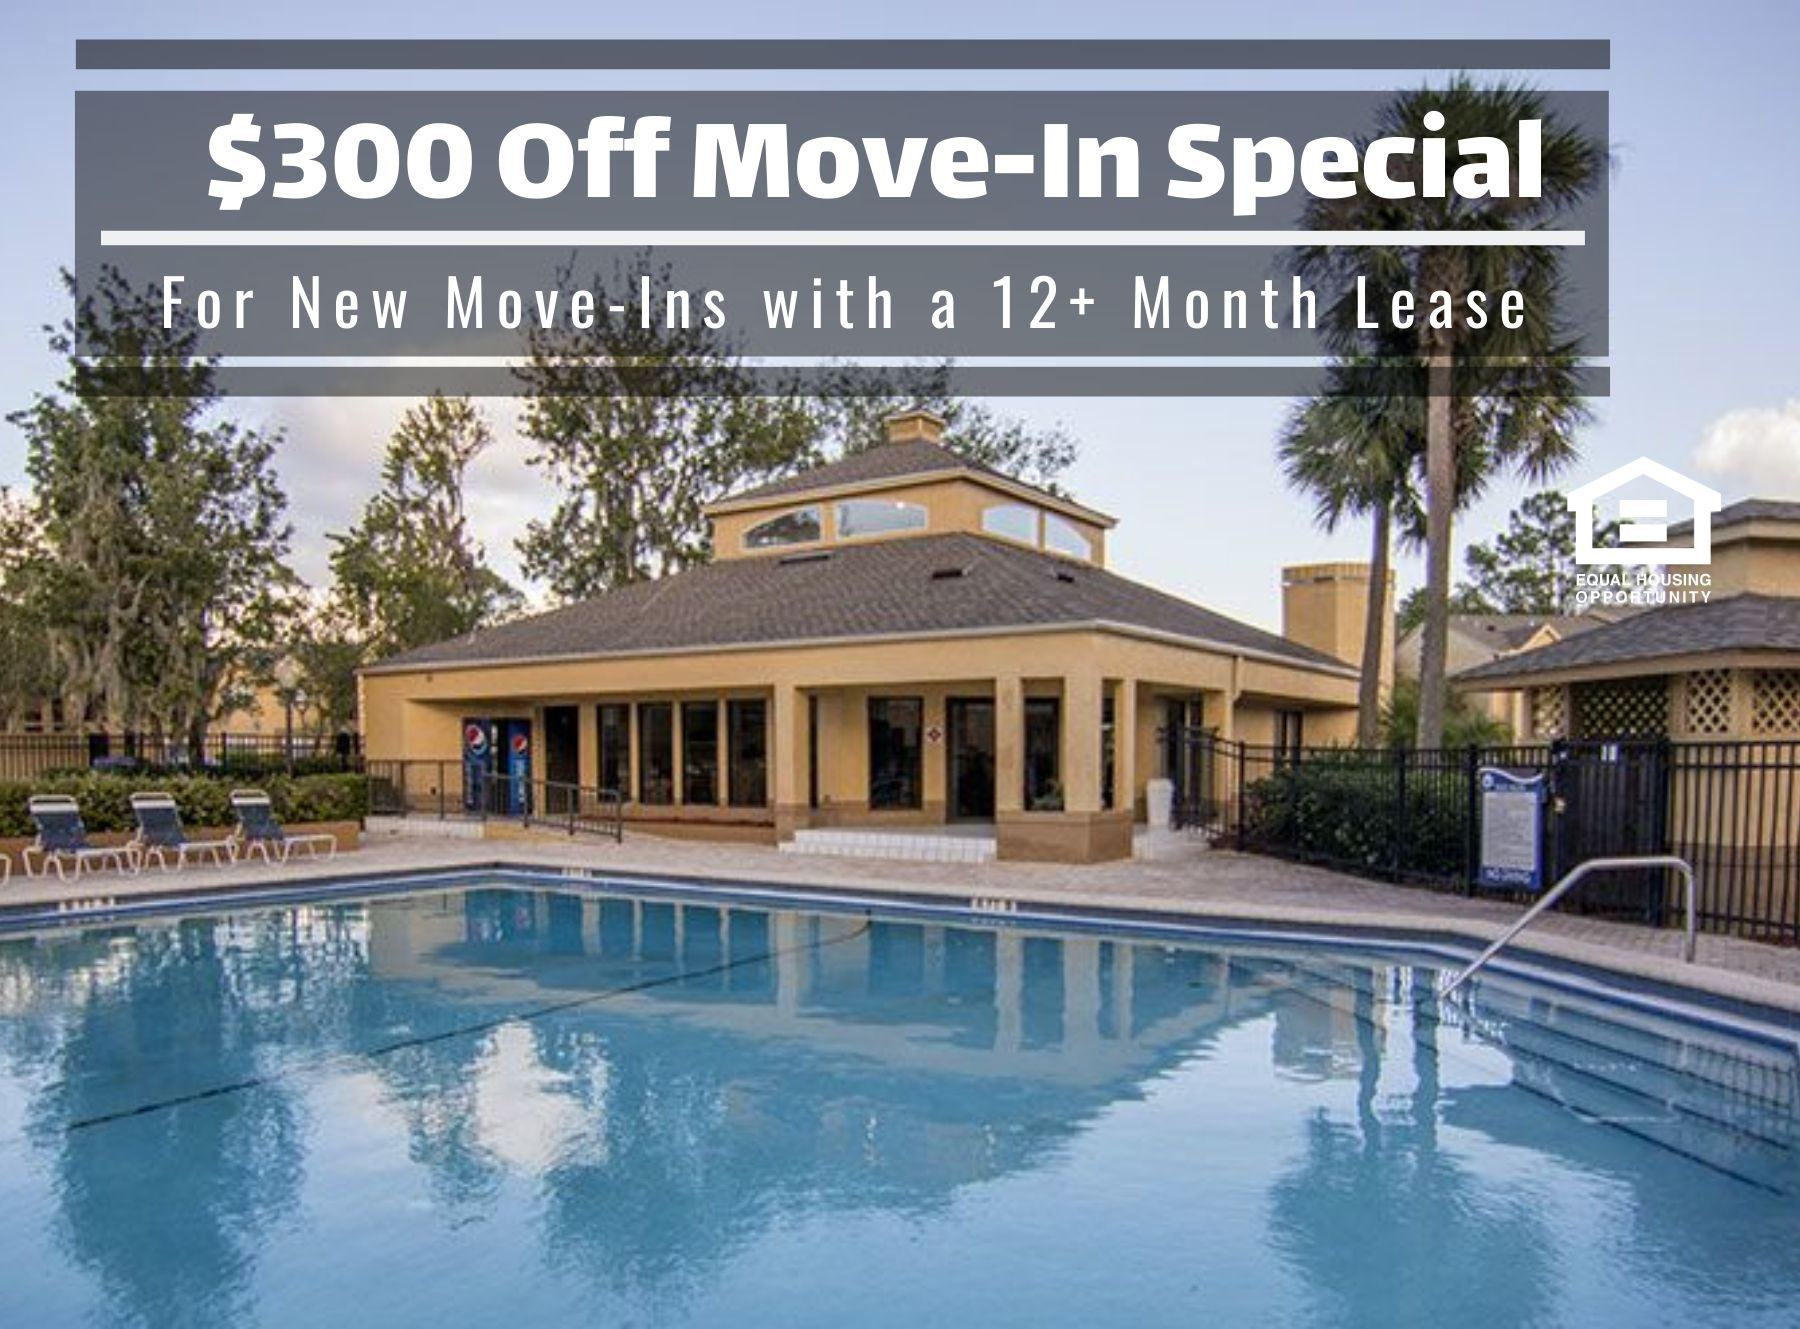 $300 off move in special for new move-ins with a 12+ month lease